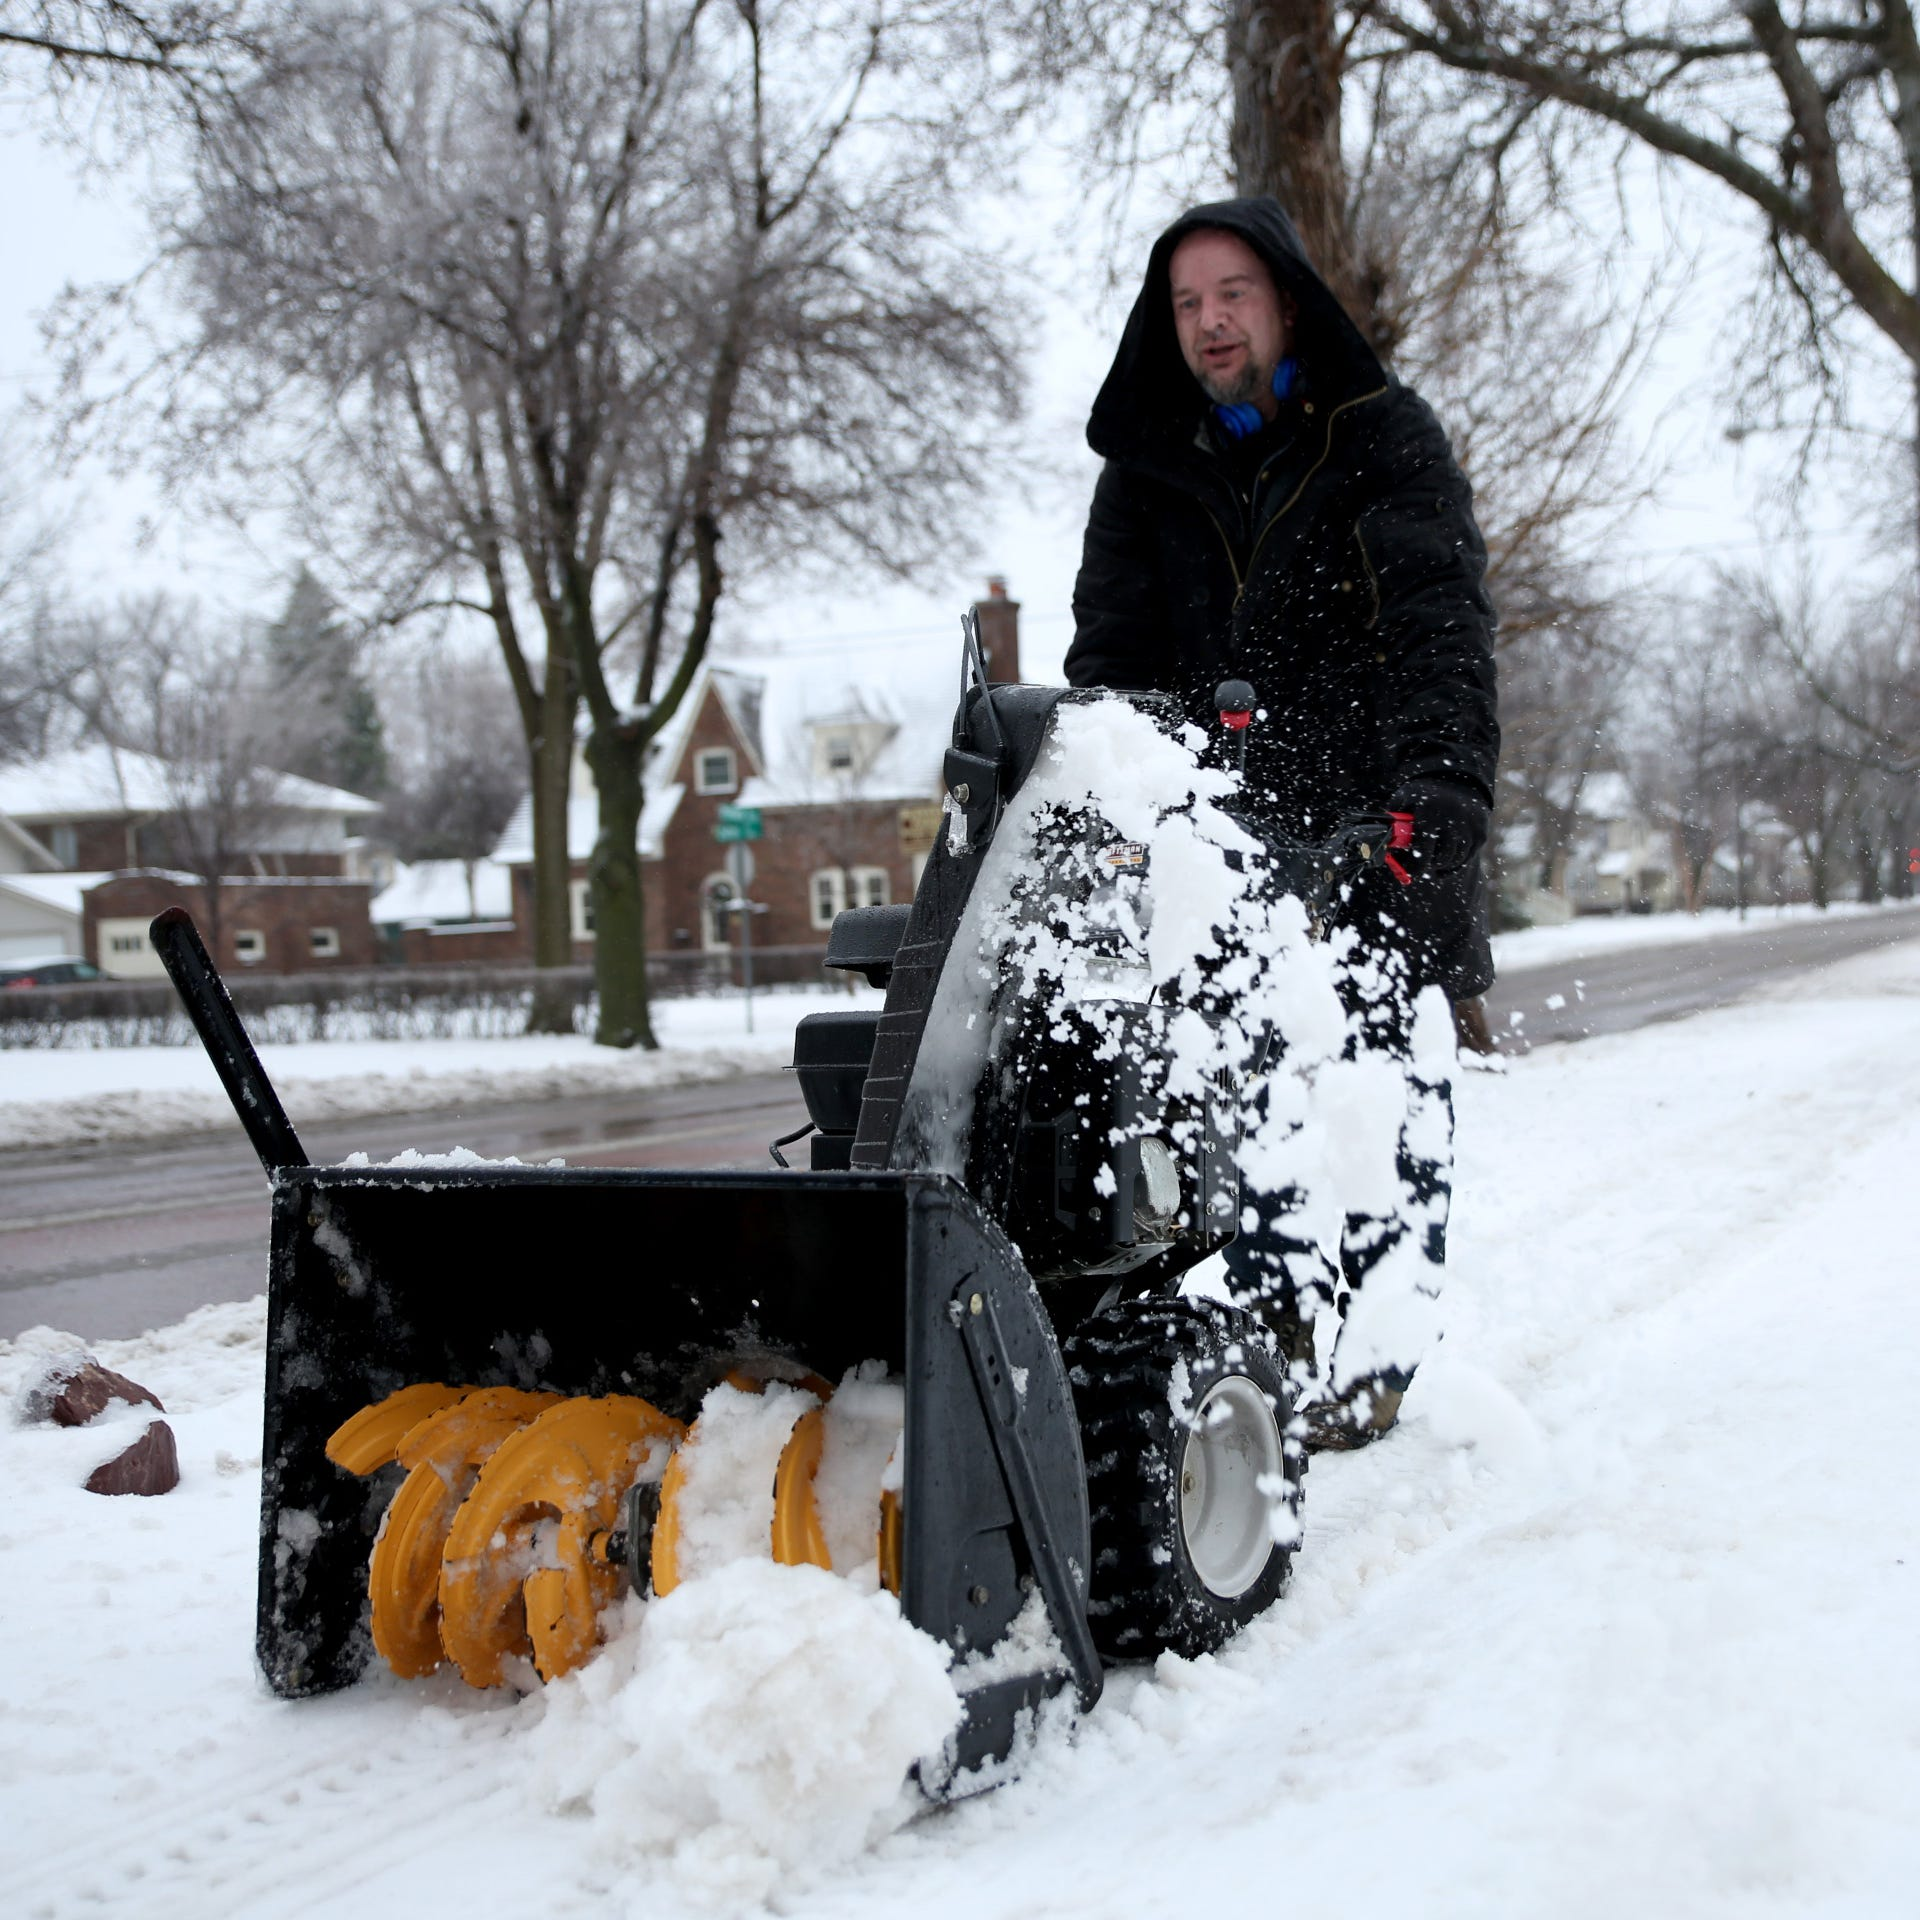 NWS: Blizzard over, snow to melt soon but gradually